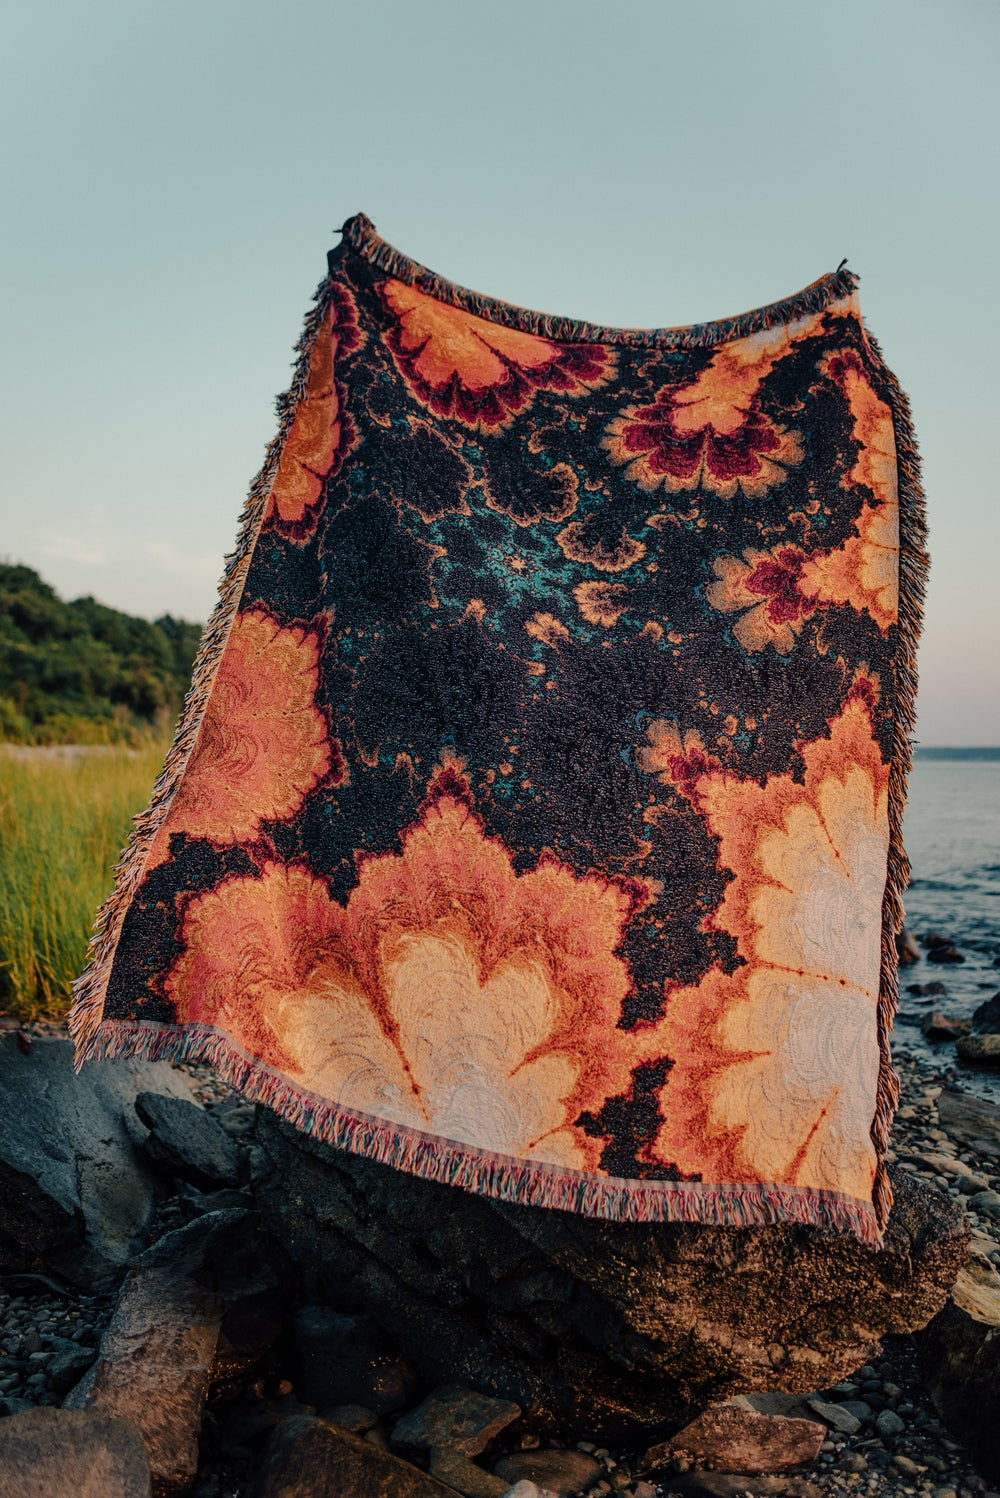 Limited Edition XL Woven Blanket